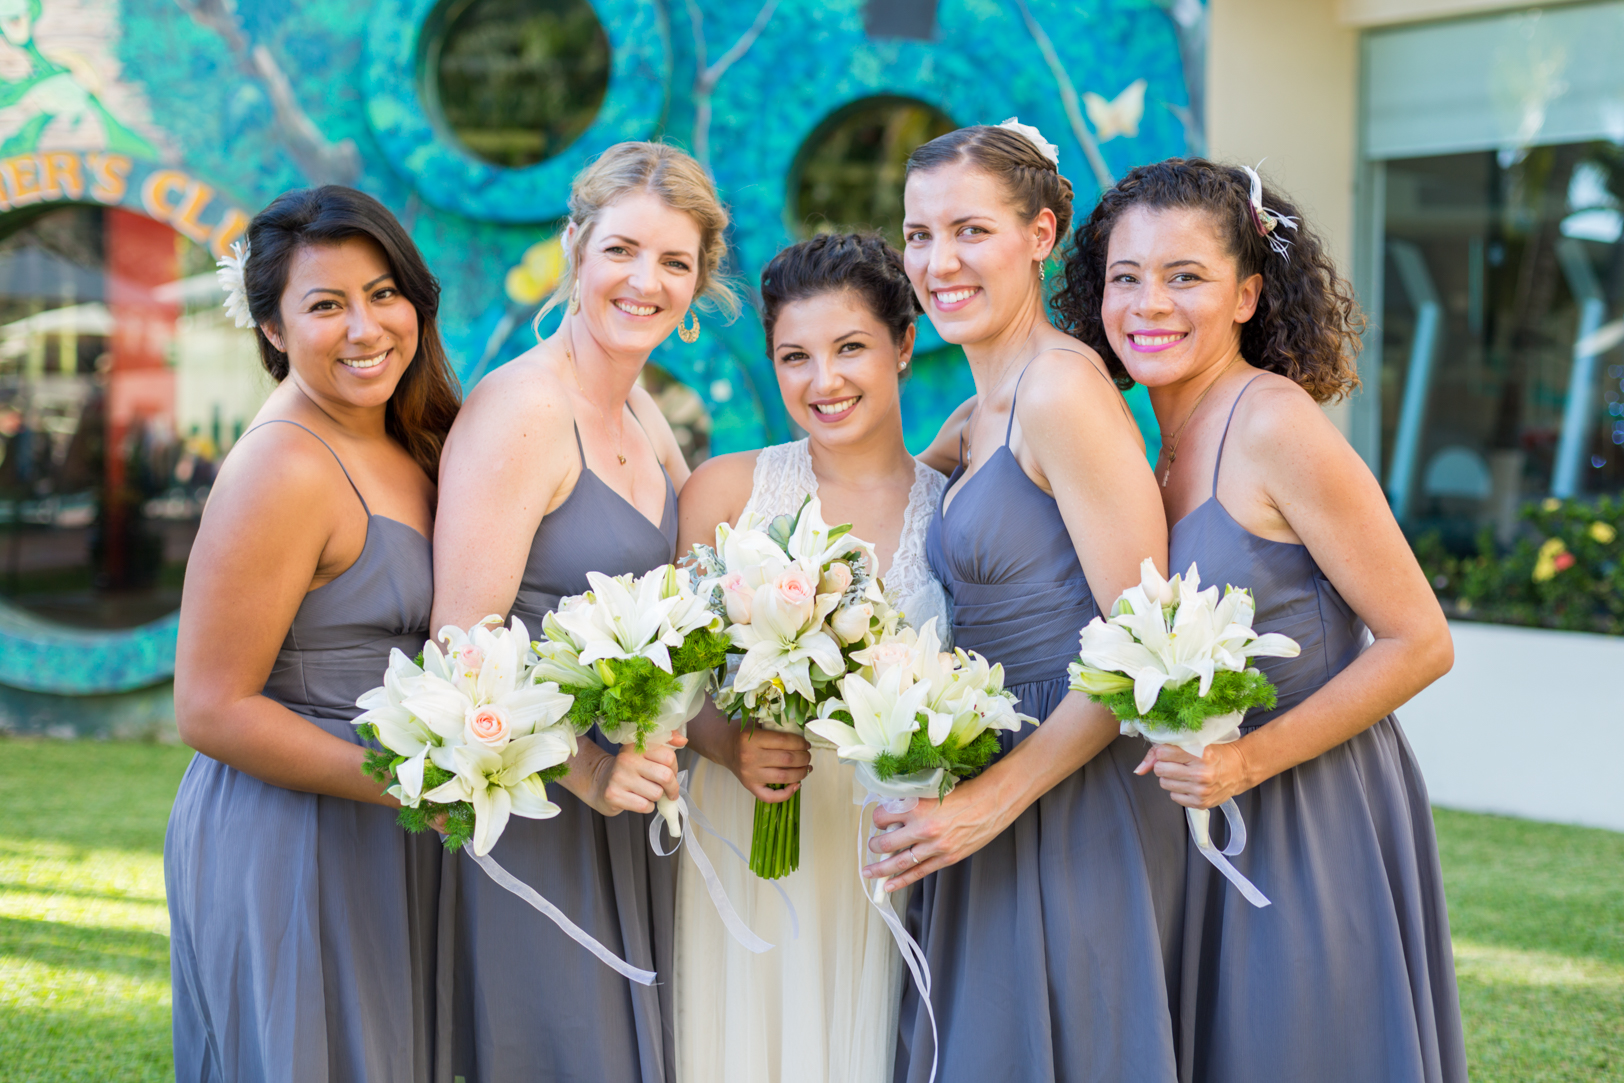 Picture of bridesmaids at the Sunscape Dorado Pacifico in Ixtapa at a destination wedding